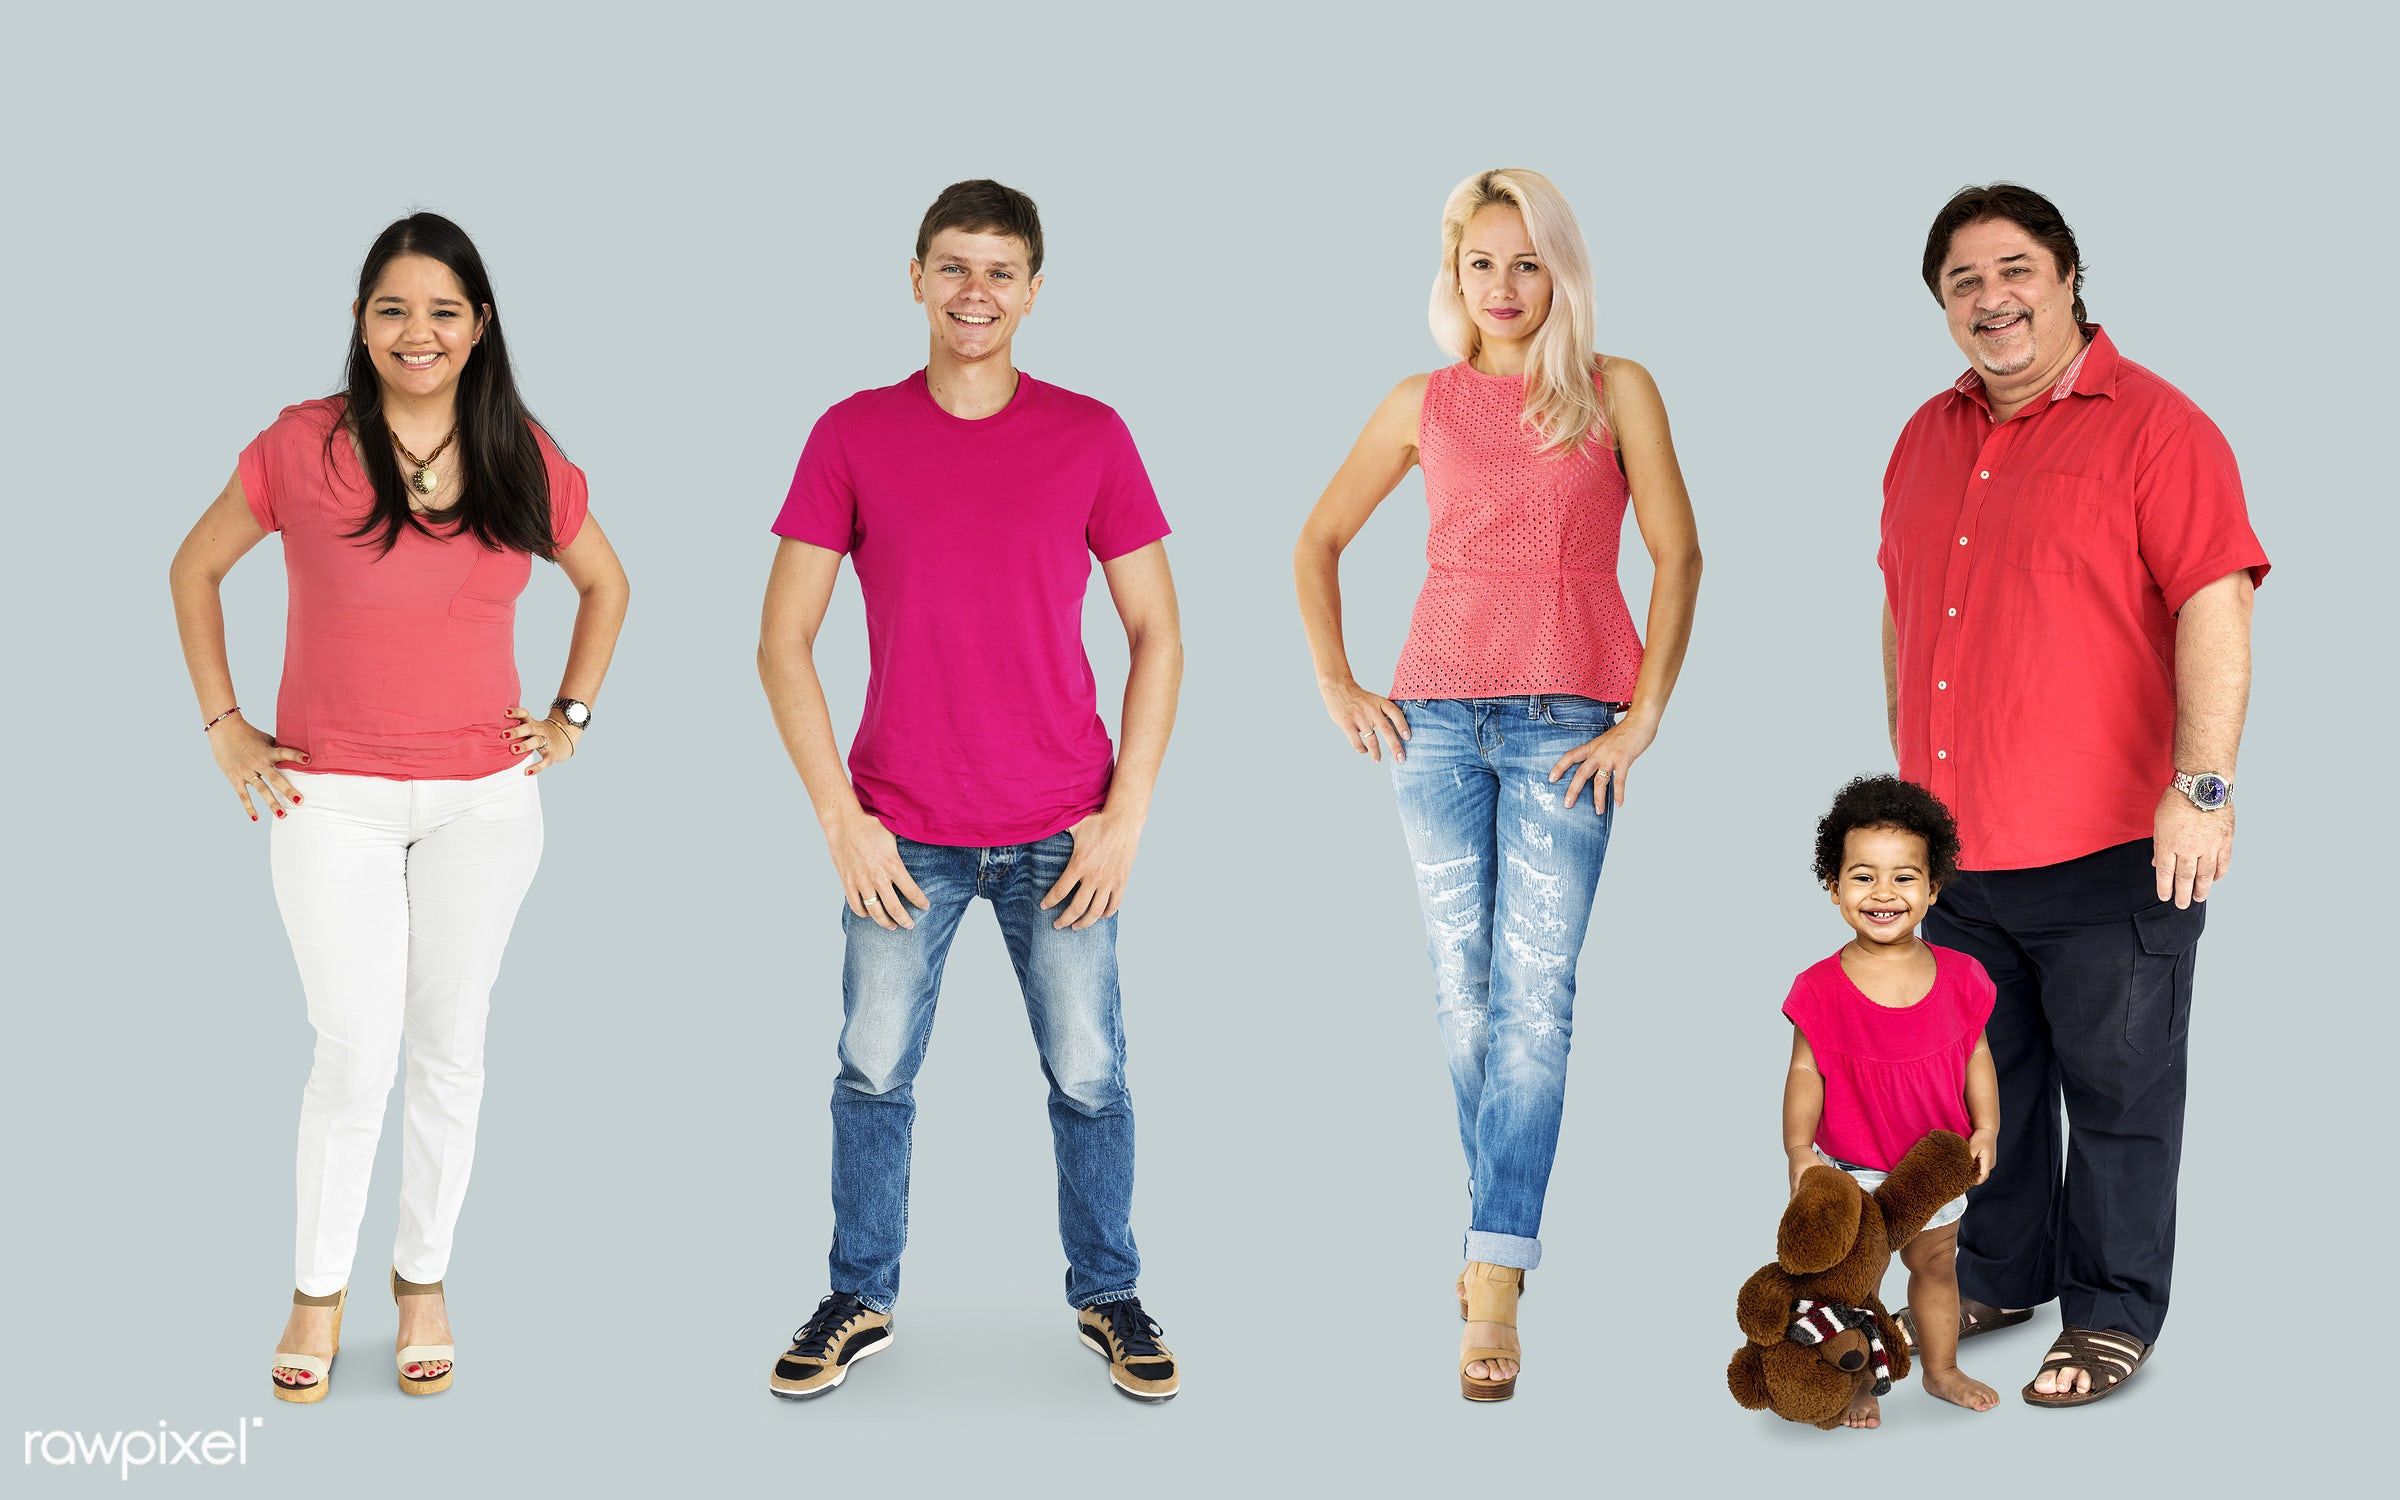 studio, person, diverse, little, people, together, kid, caucasian, young adult, family, woman, lifestyle, studio squareset,...